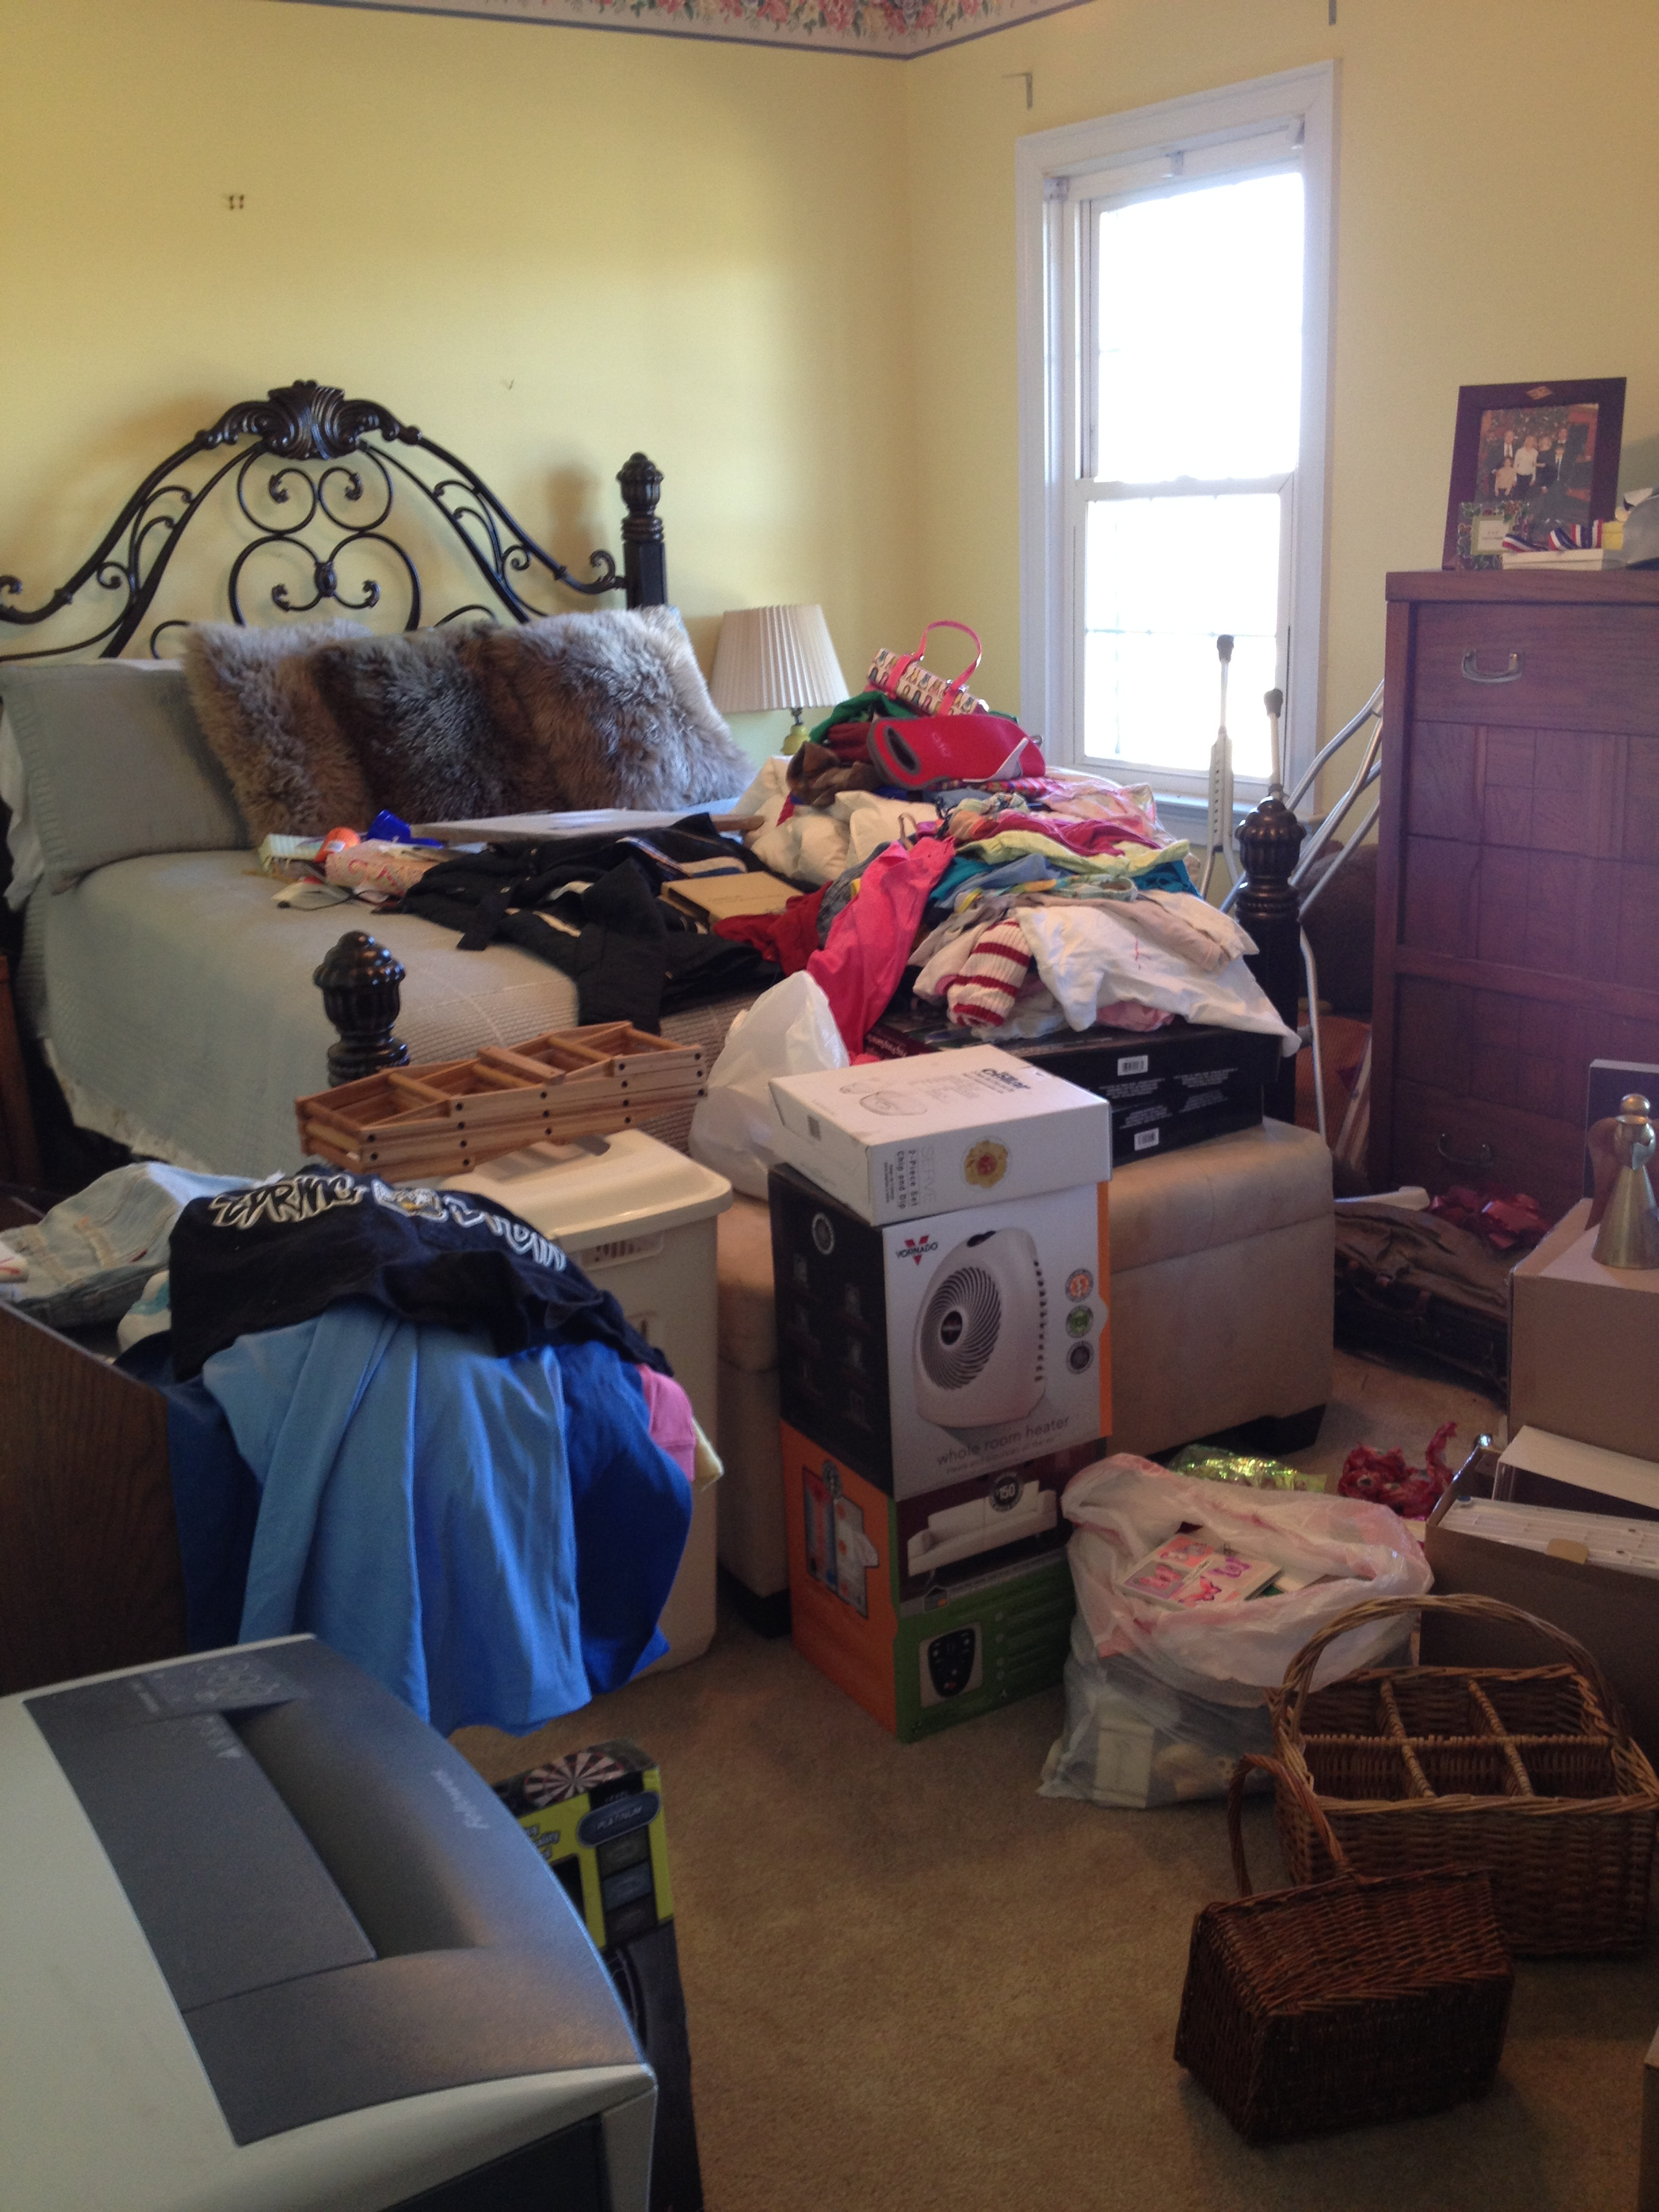 Macon 39 S My Friend Katherine Denton Before And After Organizing Cluttered Bedroom Archives My